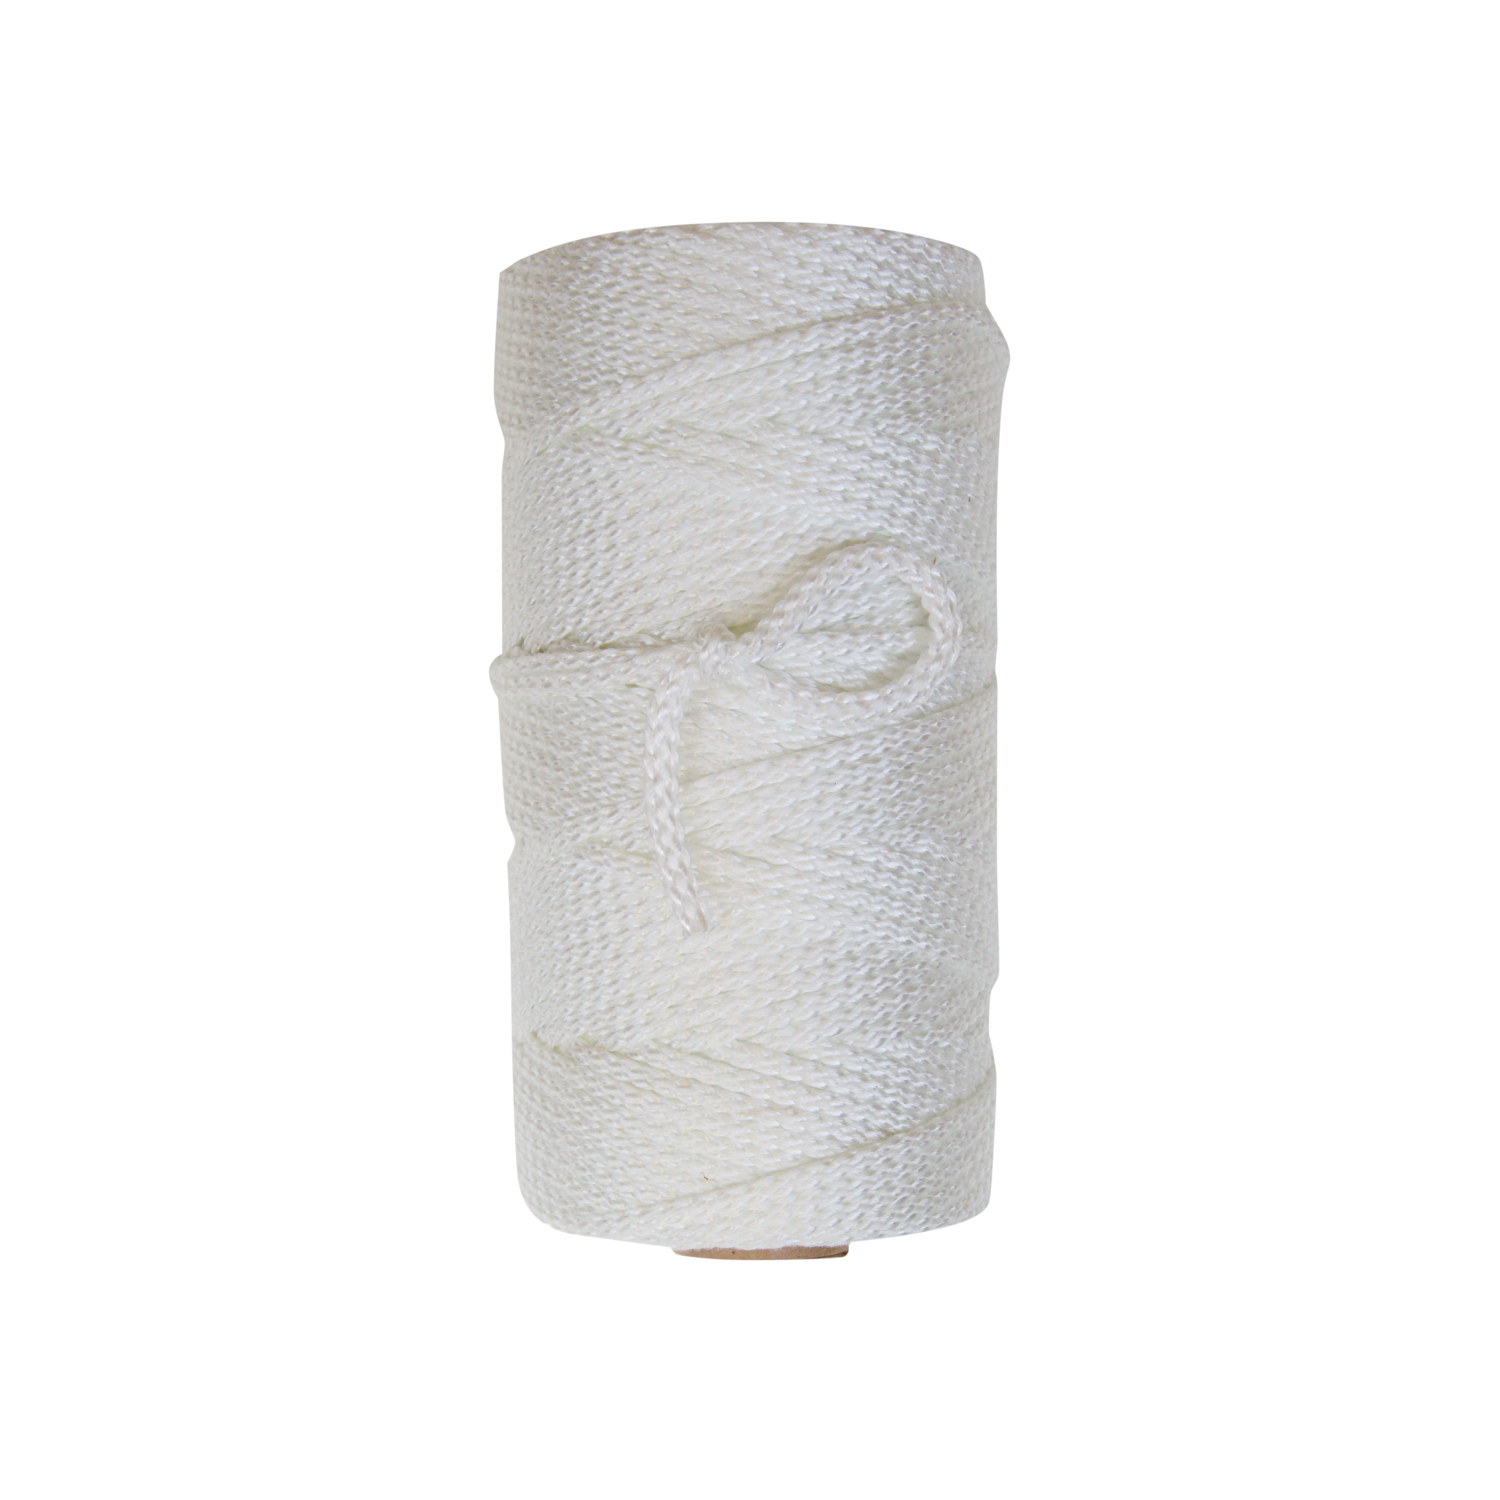 Power Grip - Power Grip twine is an 8-carrier construction made from industrial natural white nylon blended with textured nylon to provide enhanced grip for knot set and adhesion. Offered in 1 lb put-ups with 12 lbs to a case.